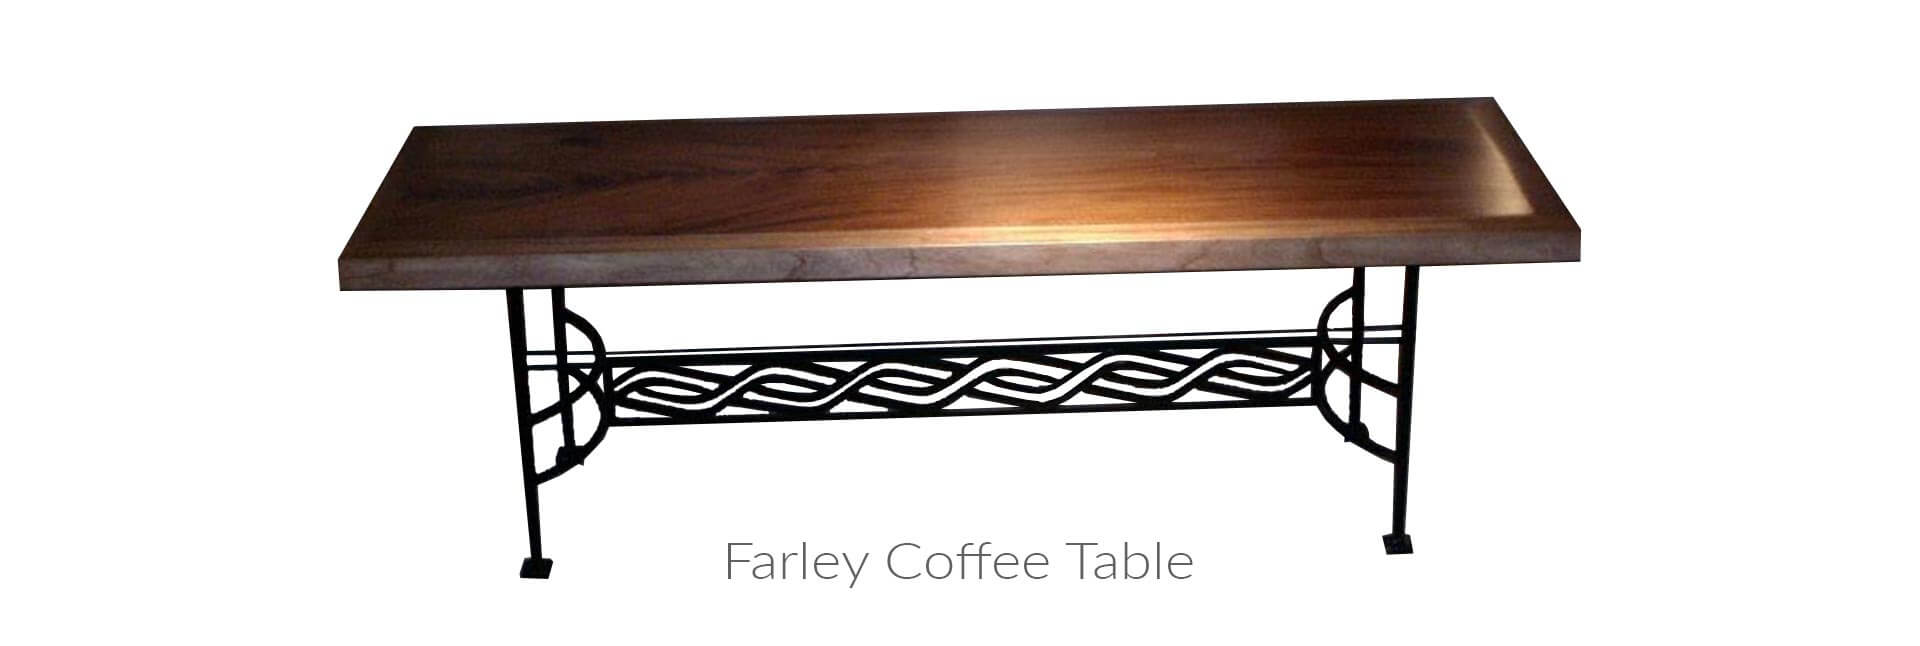 Farley-Coffee-Table